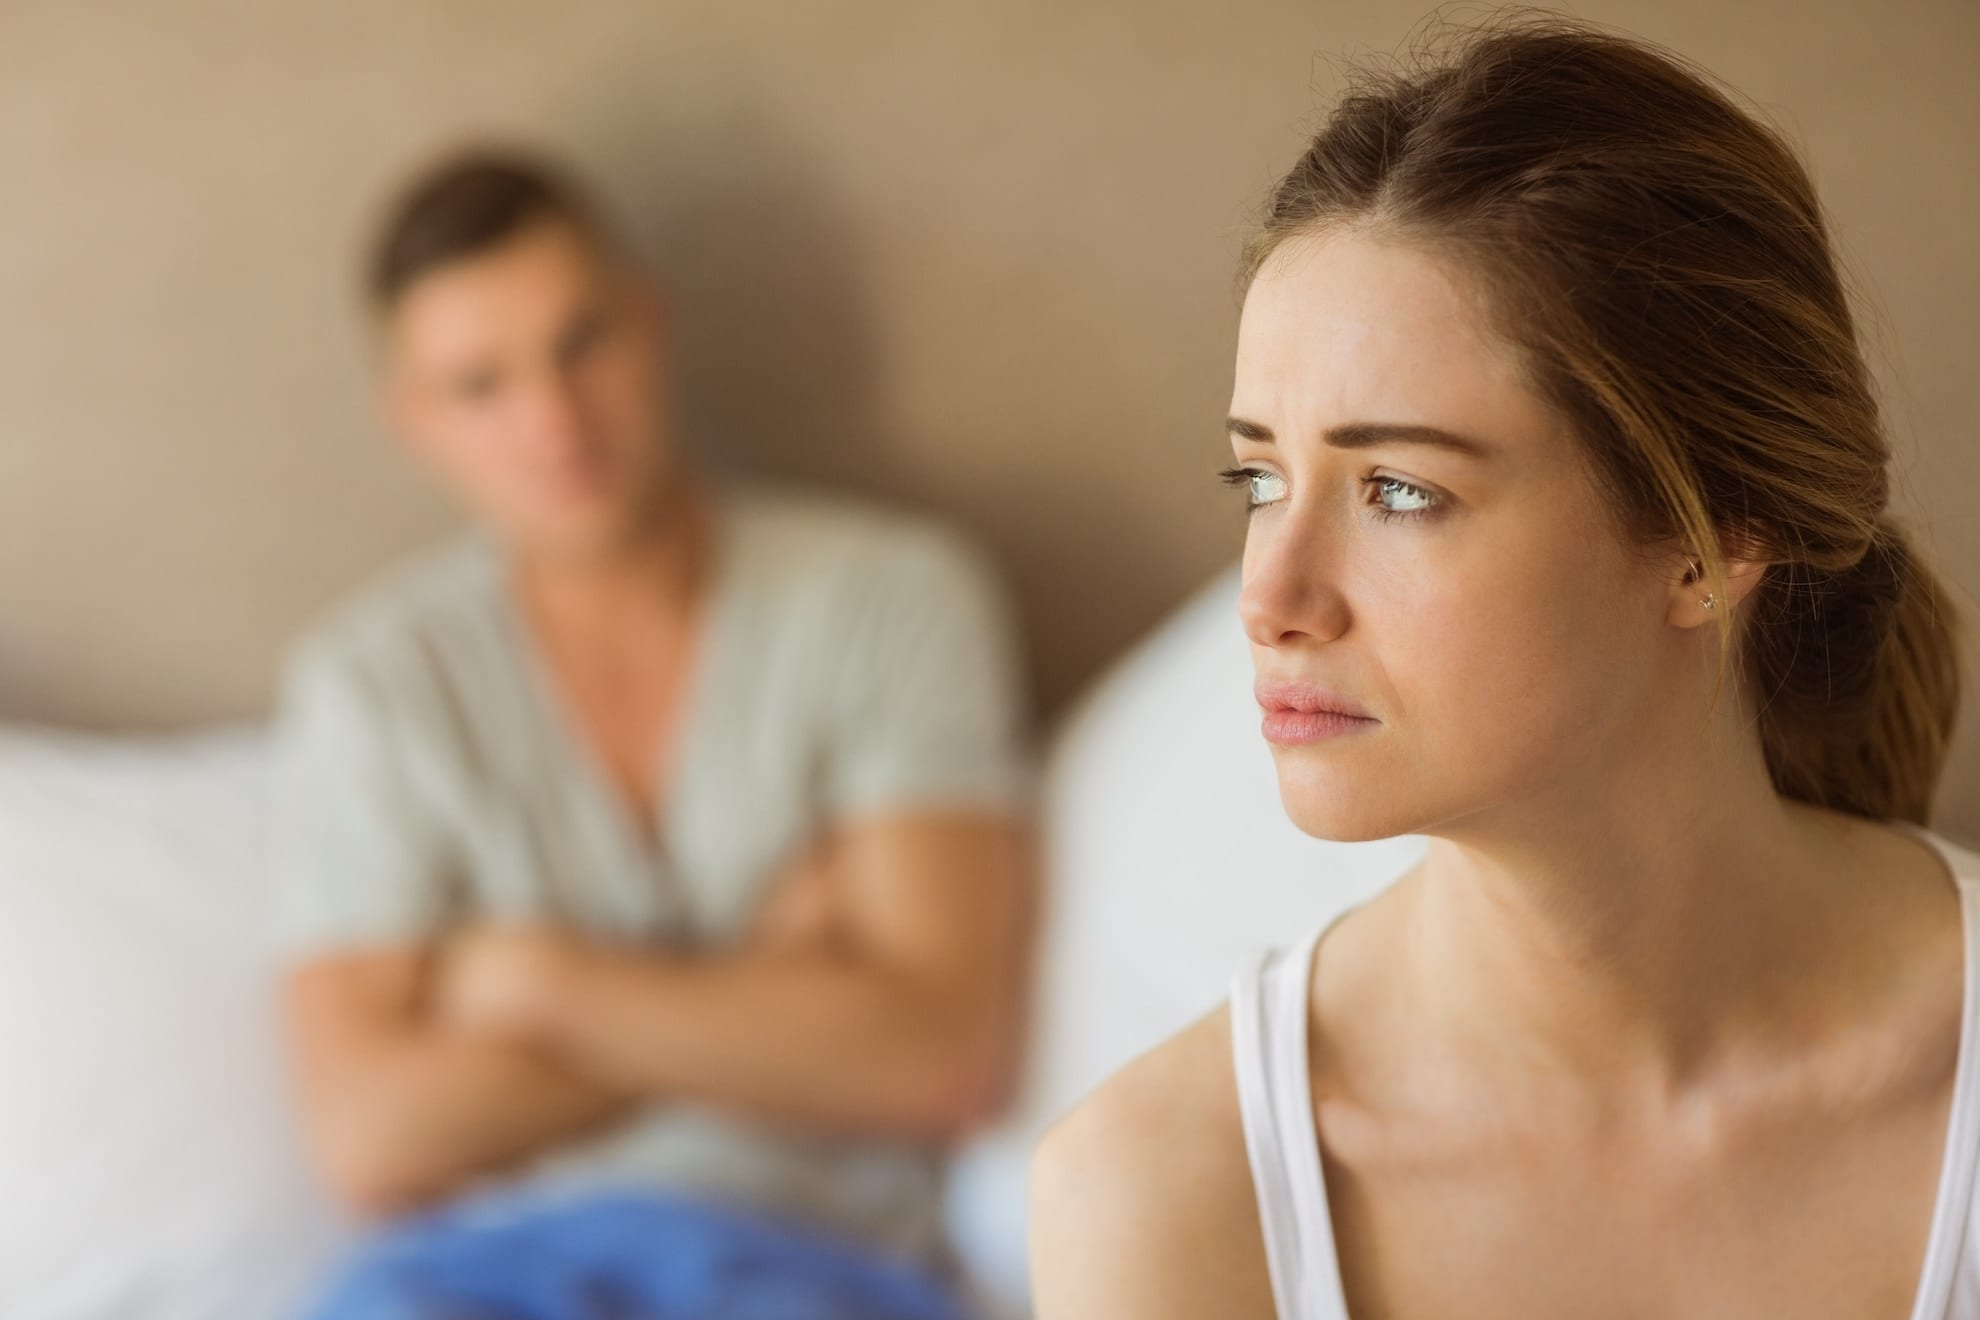 Emotional Gridlock marriage counseling Omaha